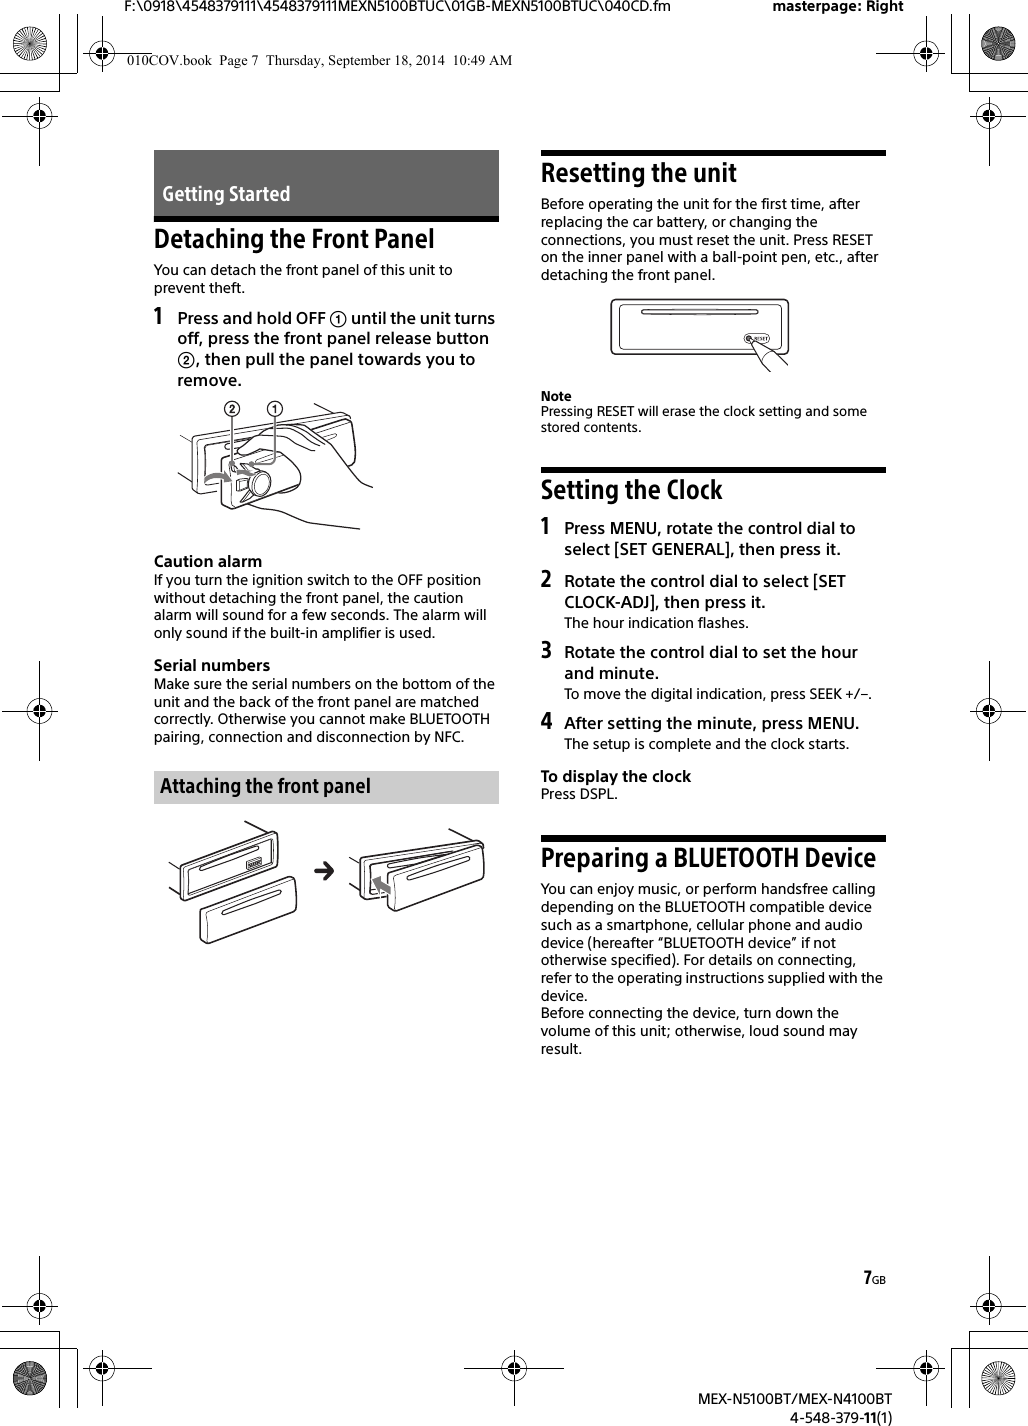 Sony mex n5100bt manual pdf